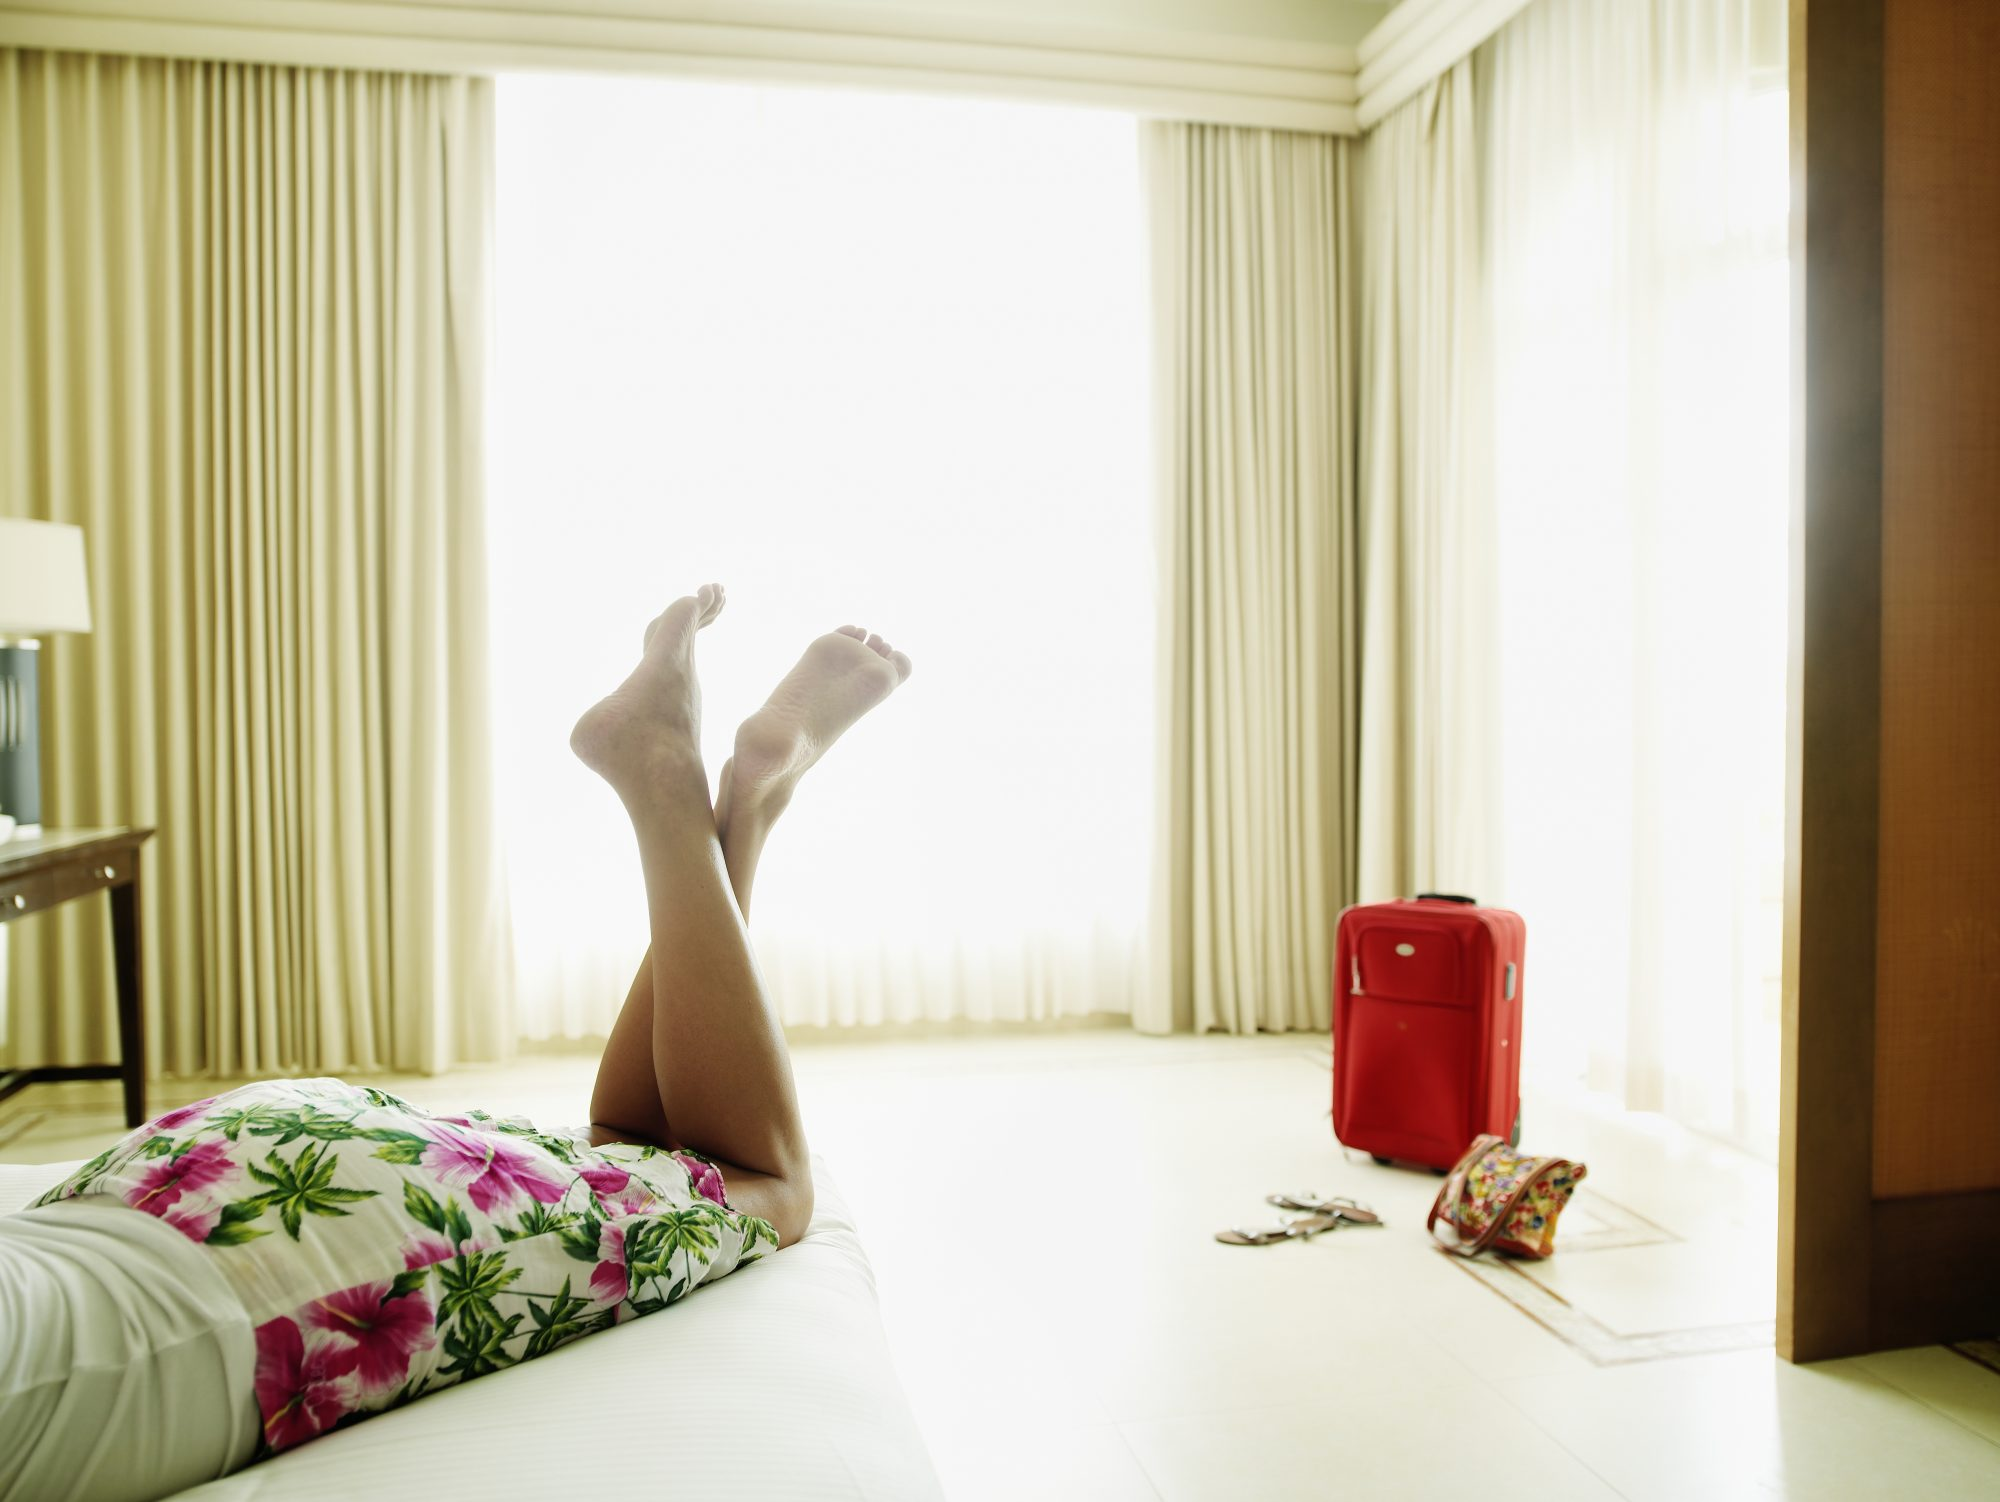 The One Mistake You're Making at Hotels That Attracts Bed Bugs